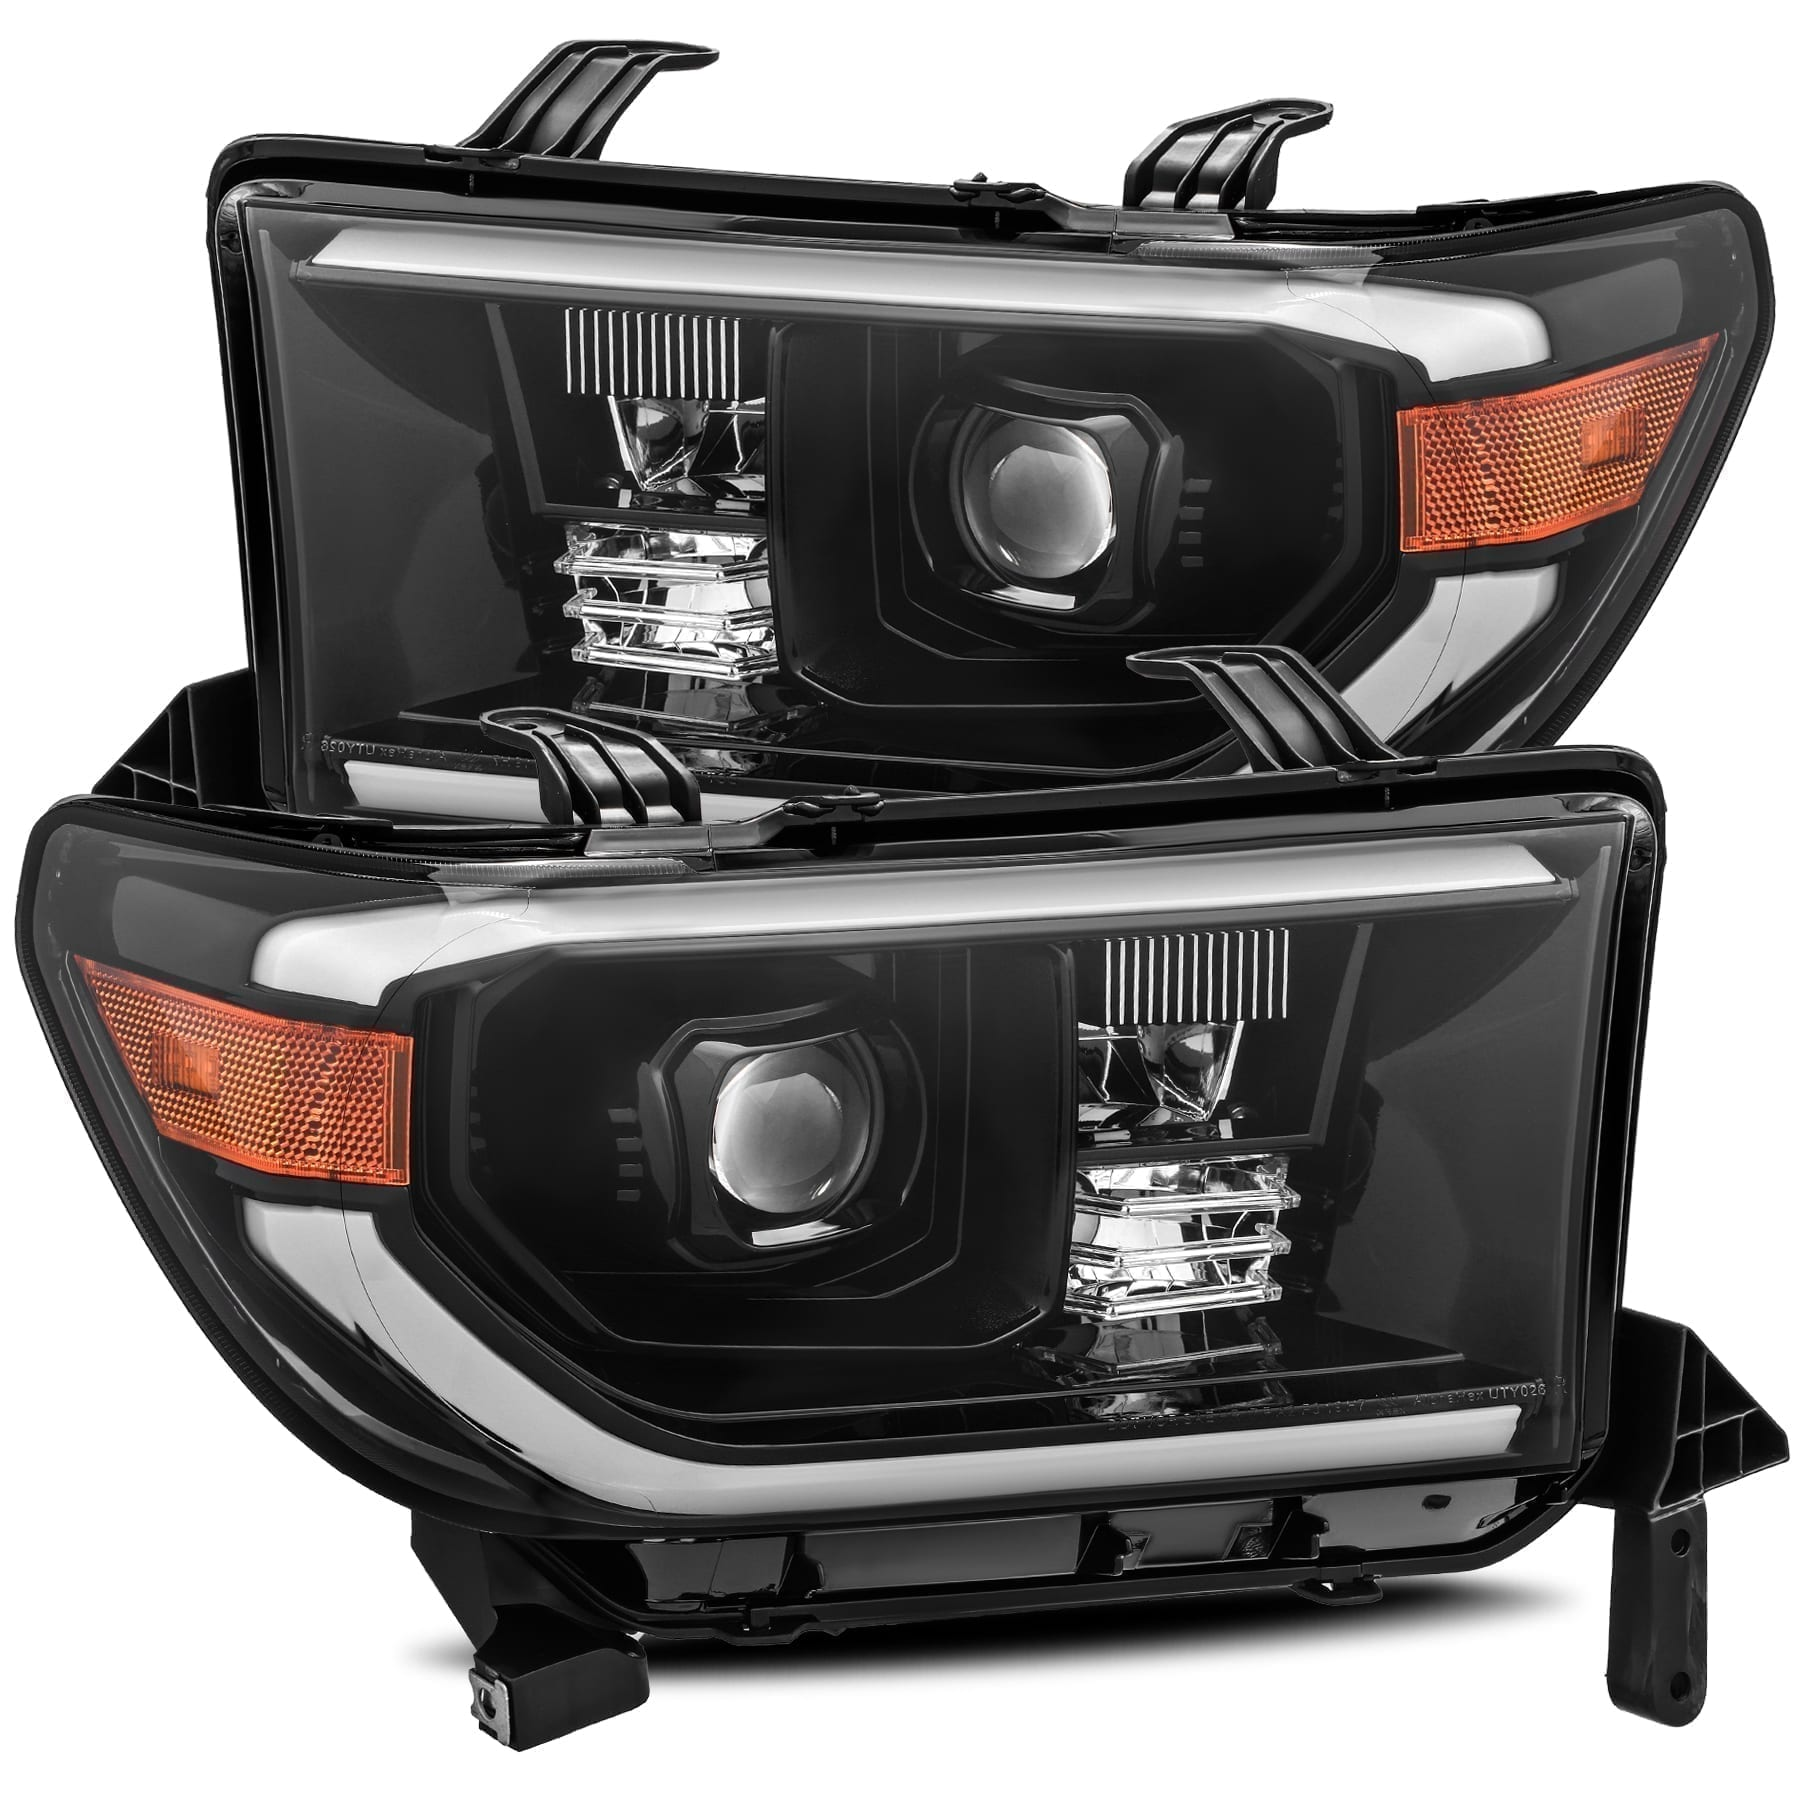 2007 2008 2009 2010 2011 2012 2013 Toyota Tundra Sequoia PRO-Series Projector Headlights Mid-Night Black